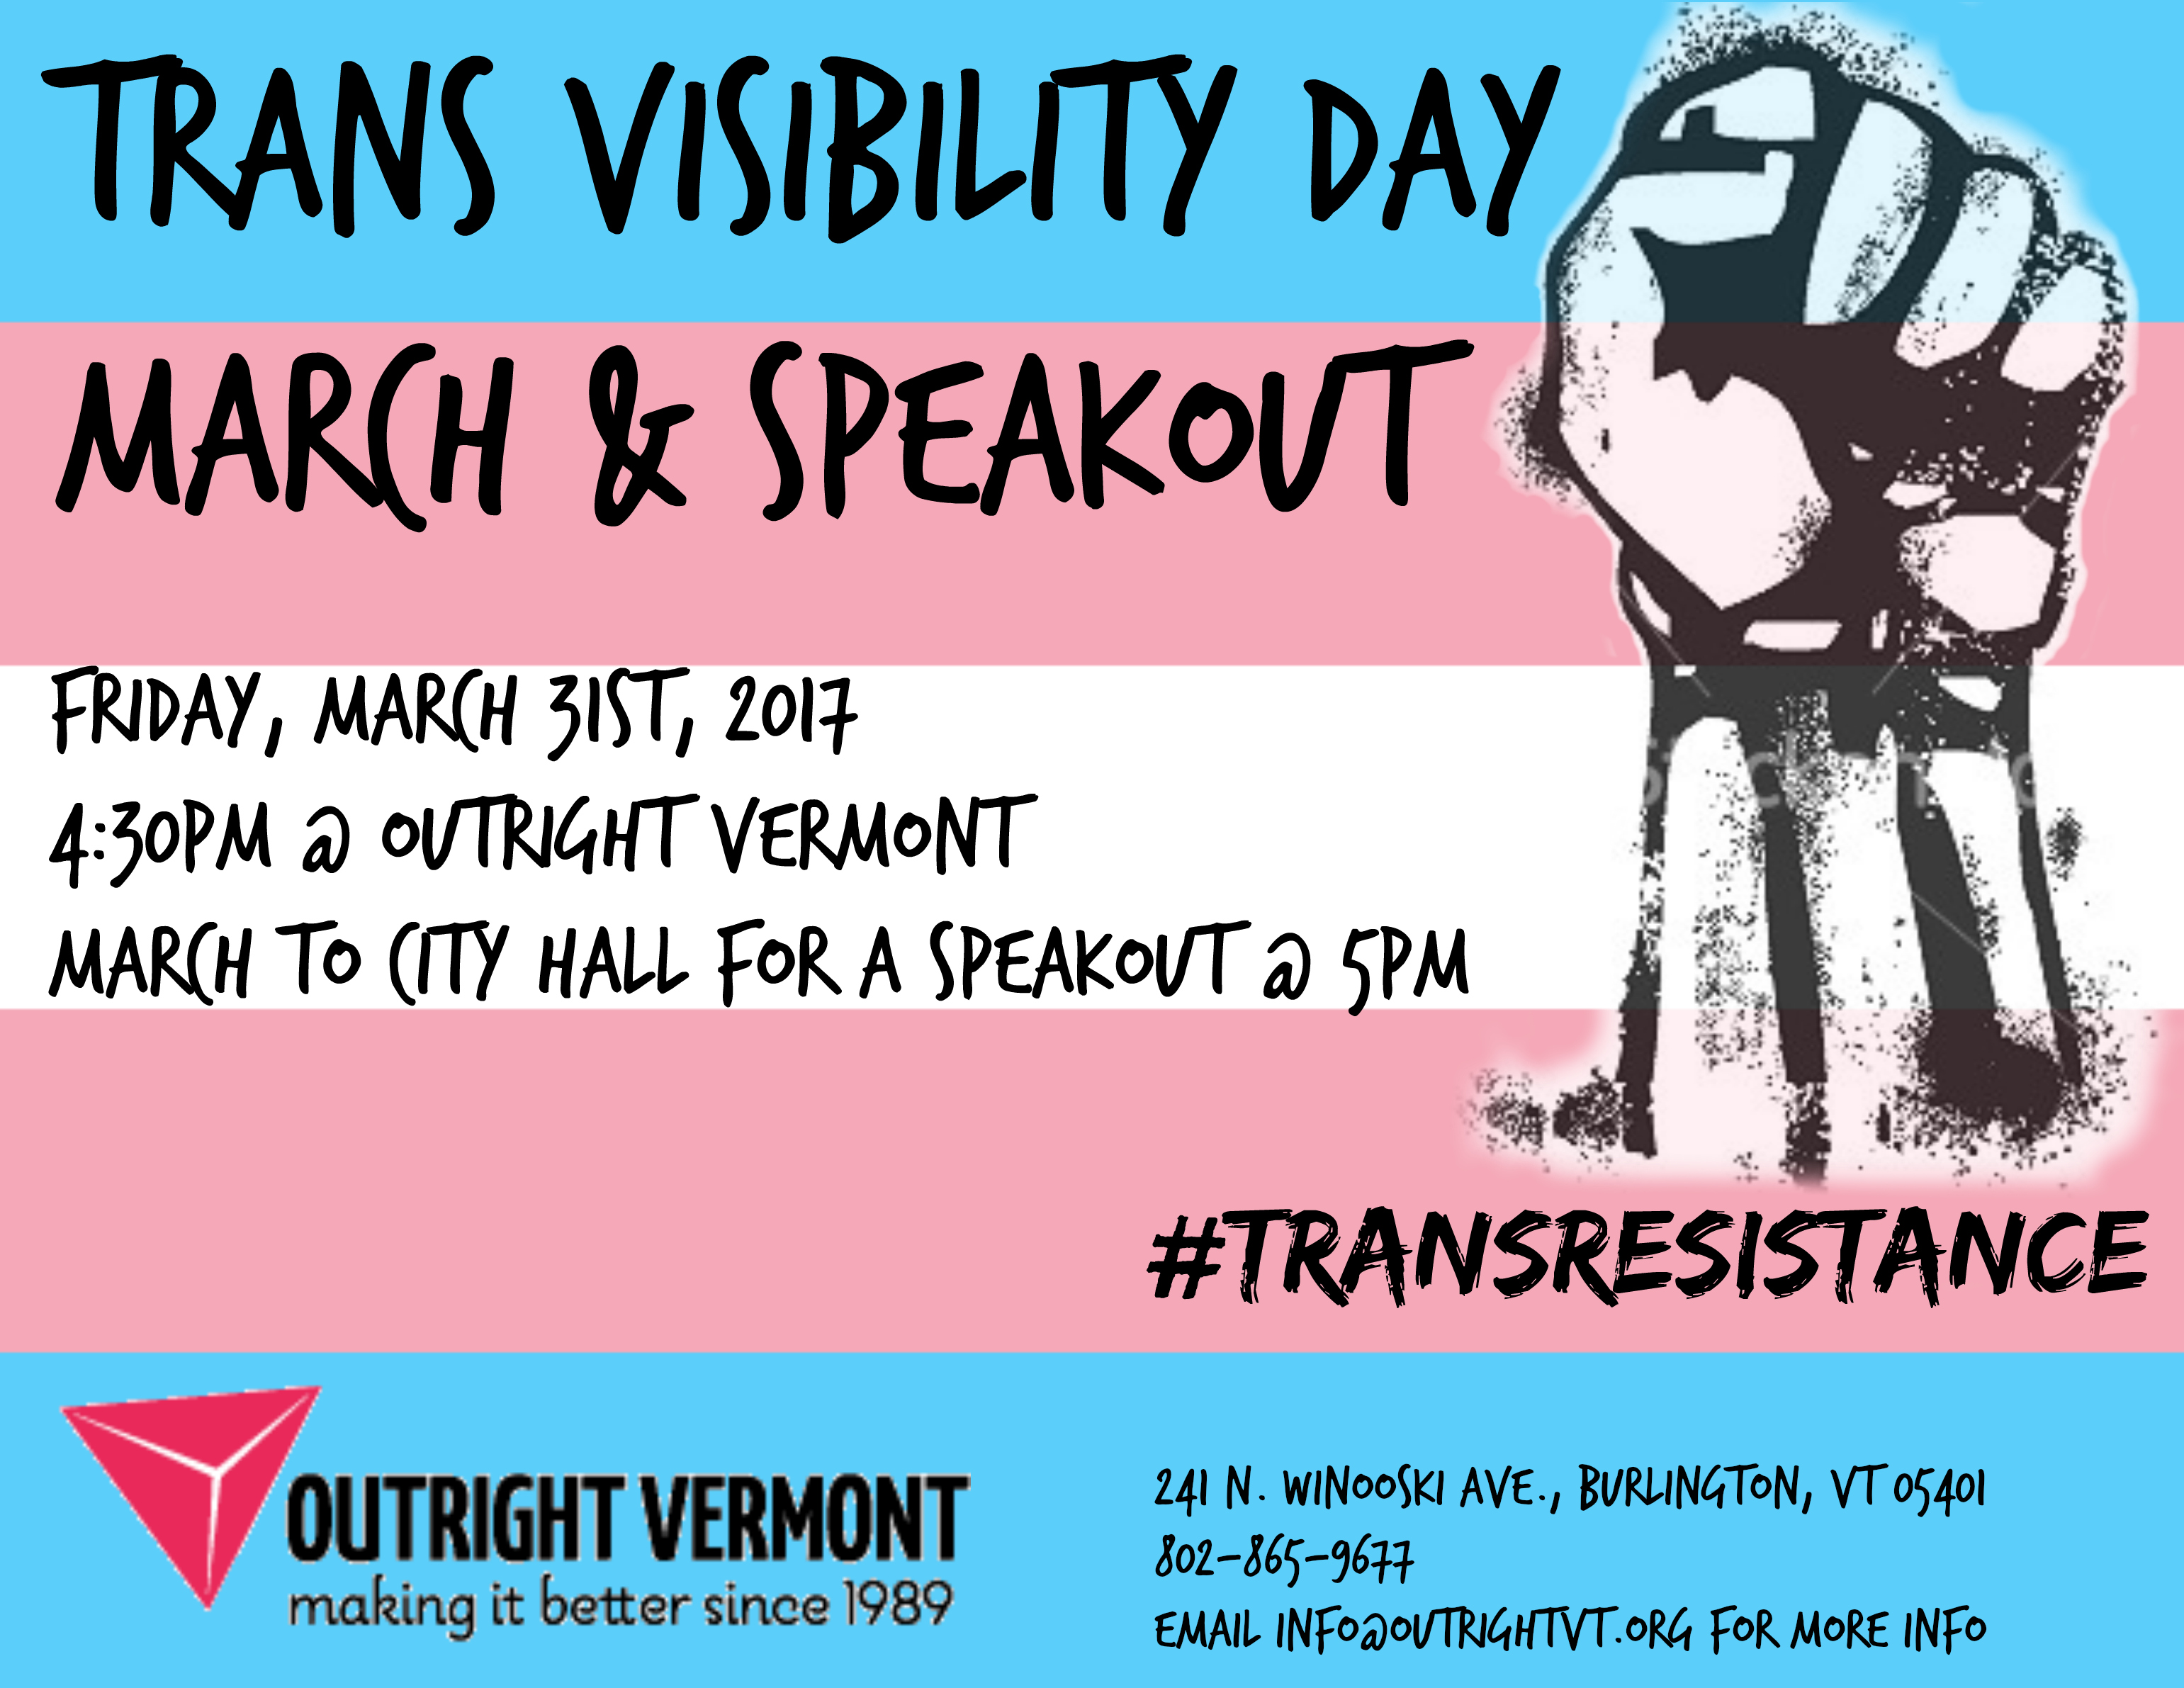 Trans Visibility March & Speak Out